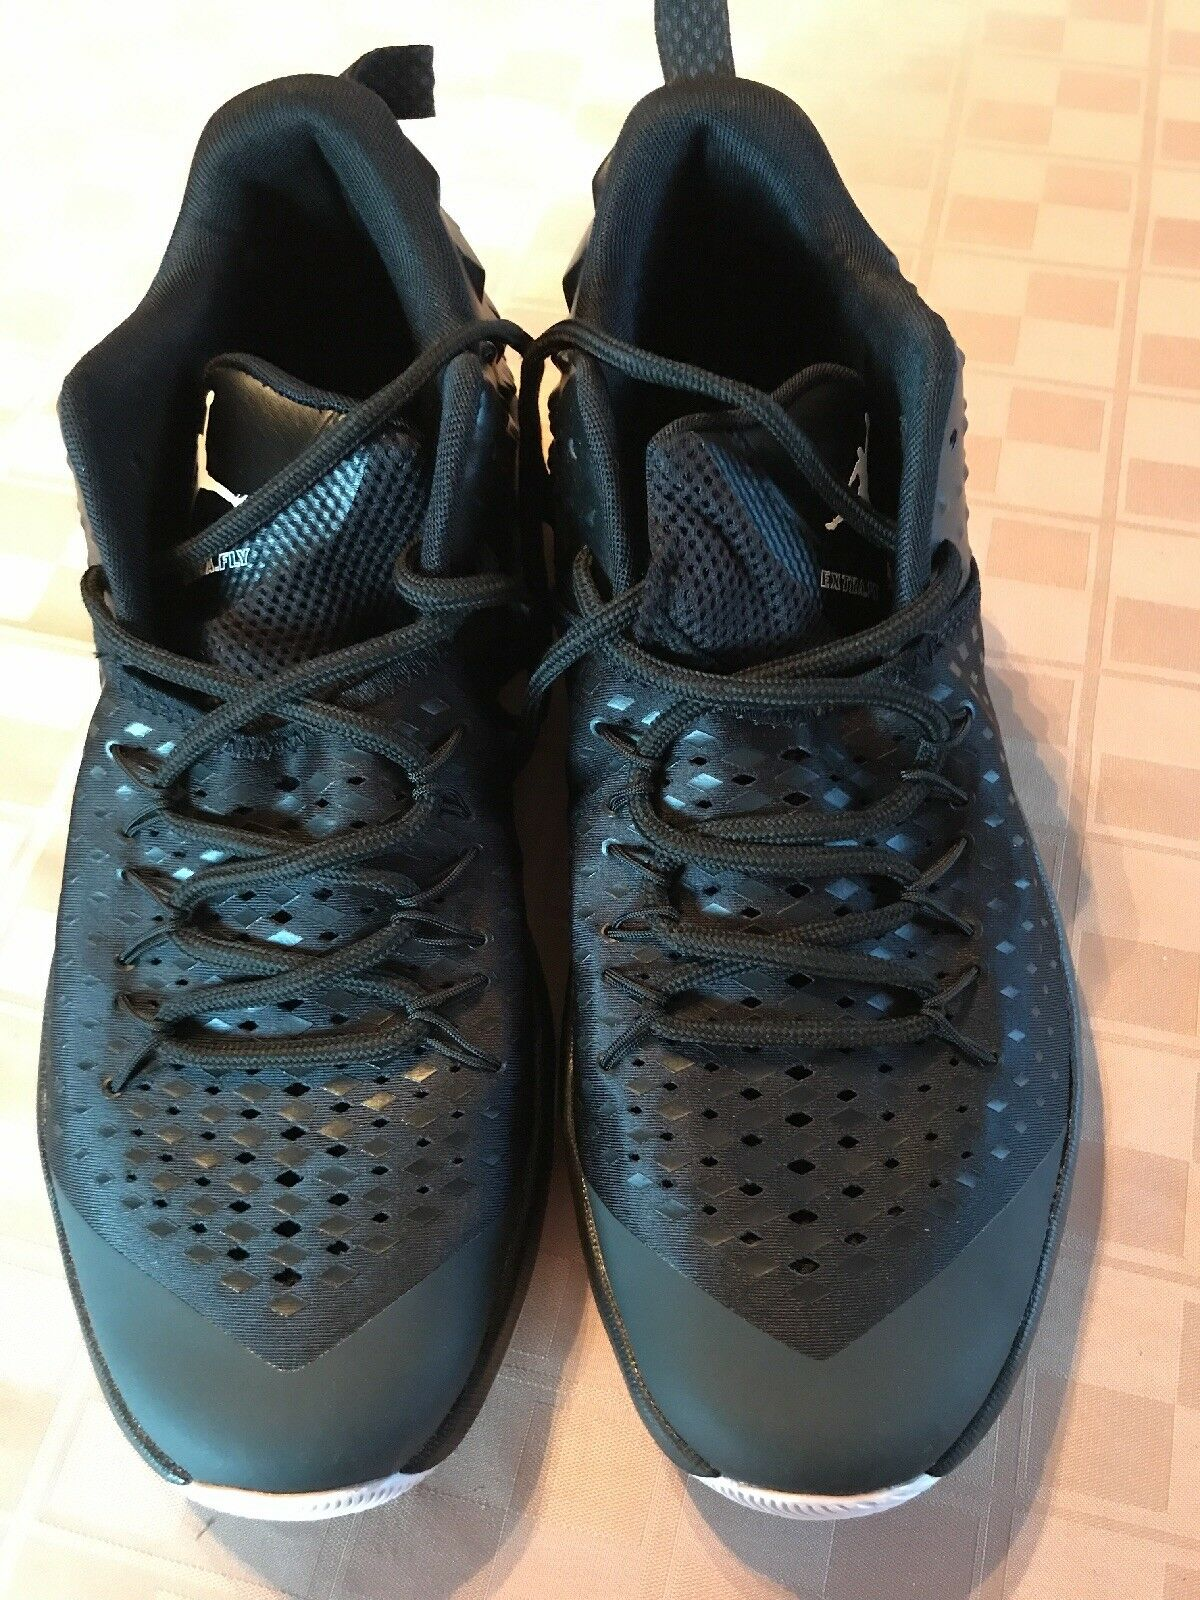 Price reduction MEN'S AIR JORDAN EXTRA FLY Basketball Shoes Ant/Wht-Blk New Comfortable Brand discount